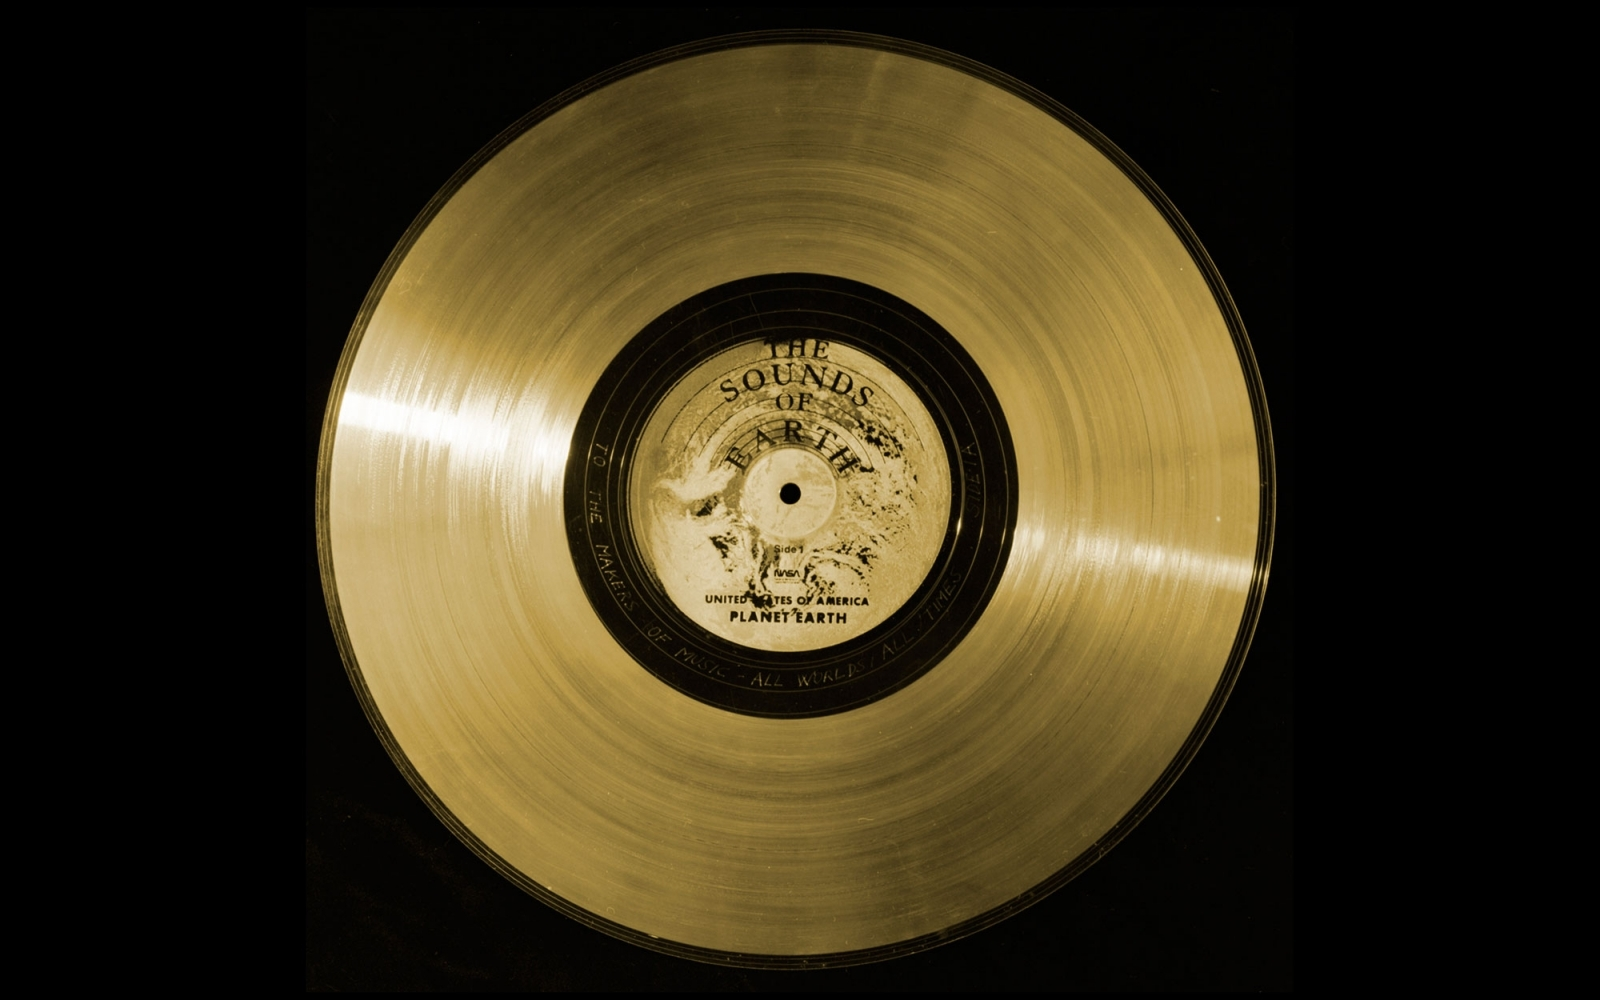 voyager 1 golden record - photo #16